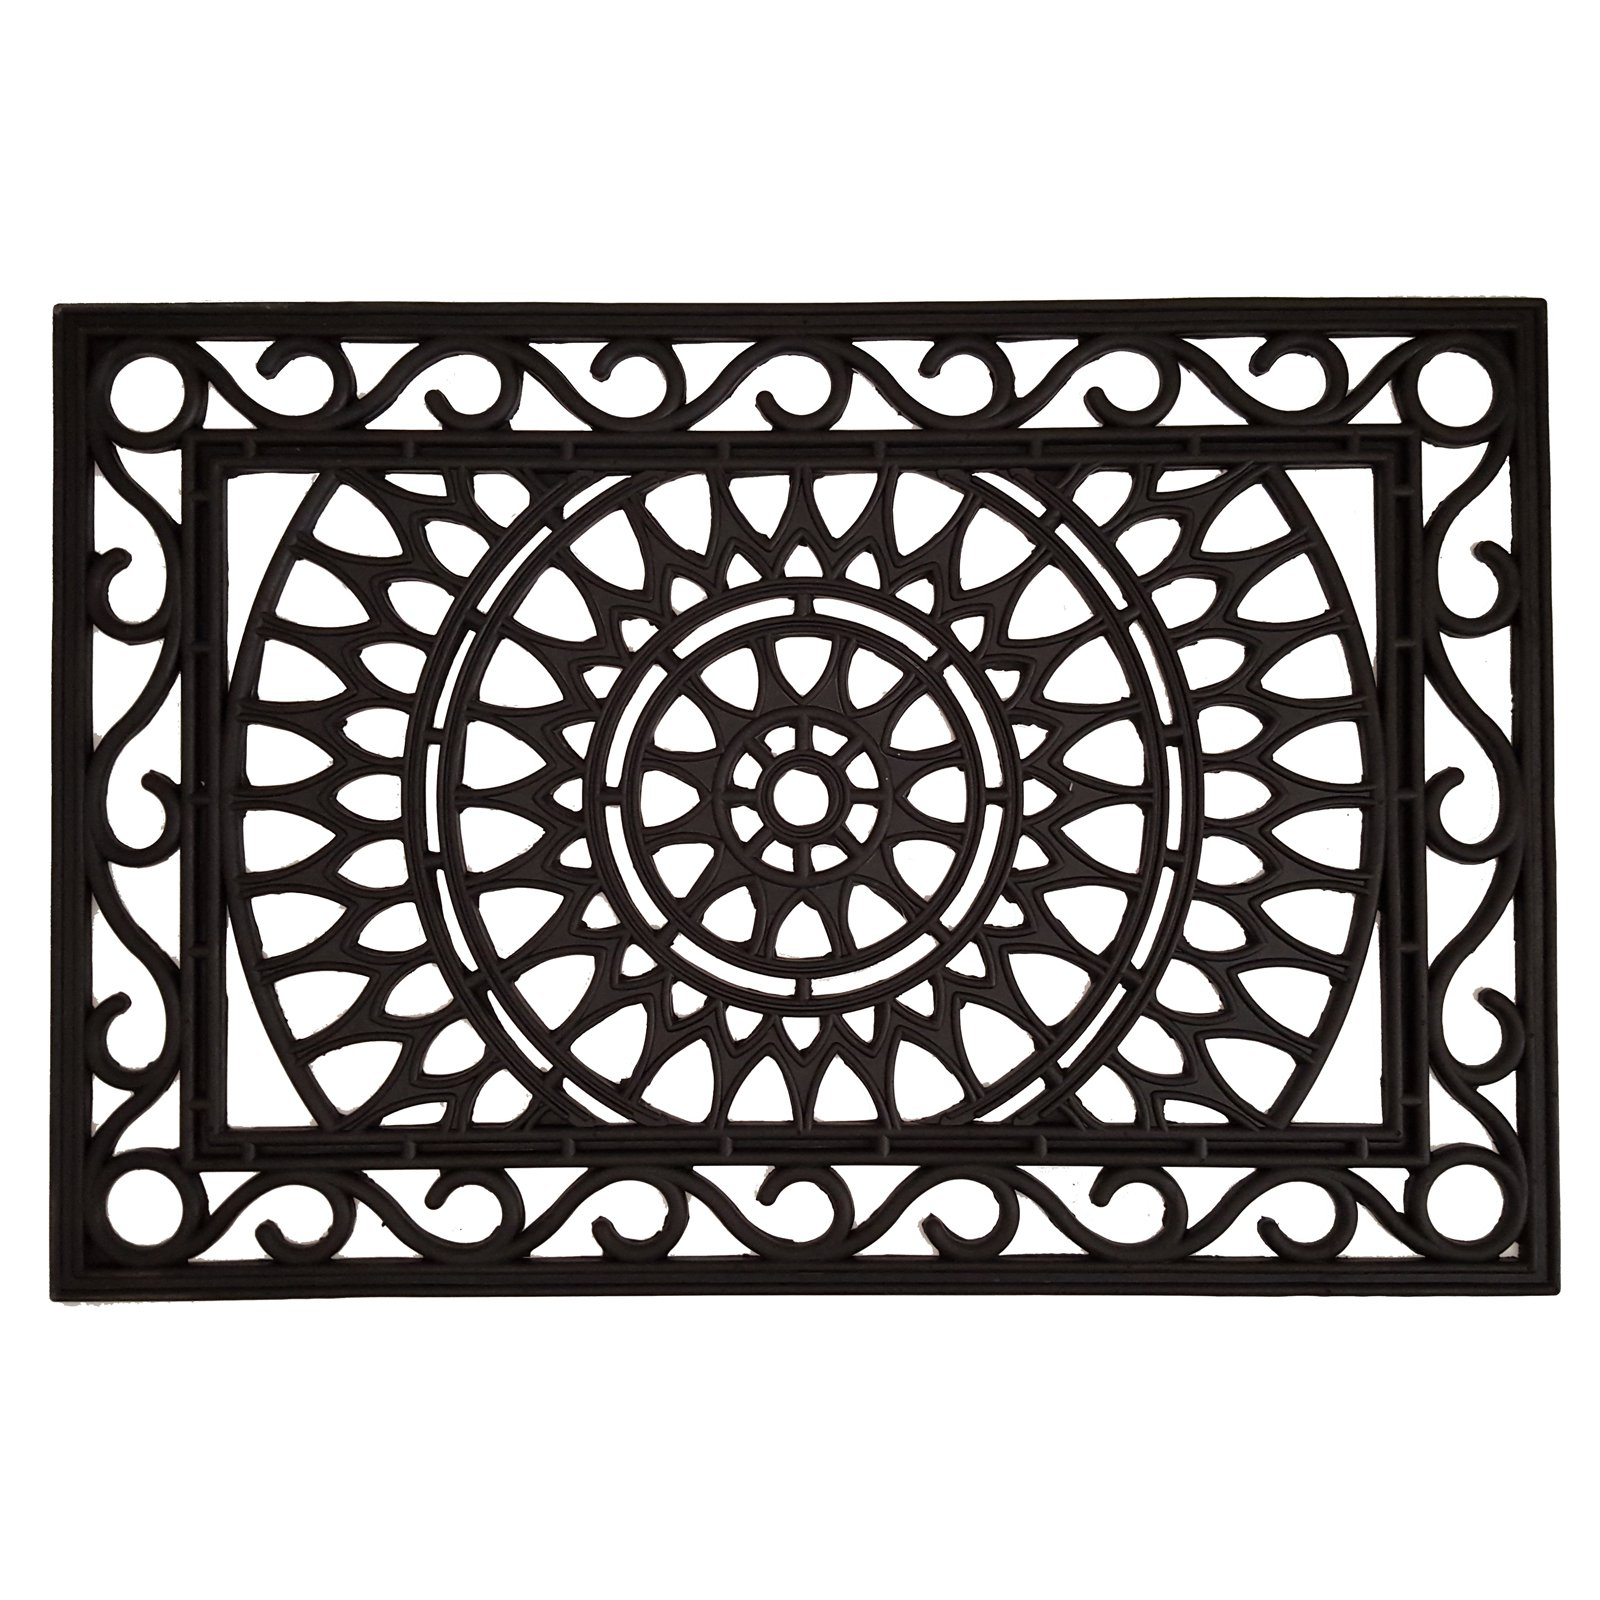 Home & More Sungate Rubber Doormat 24 x 36 in. by Supplier Generic